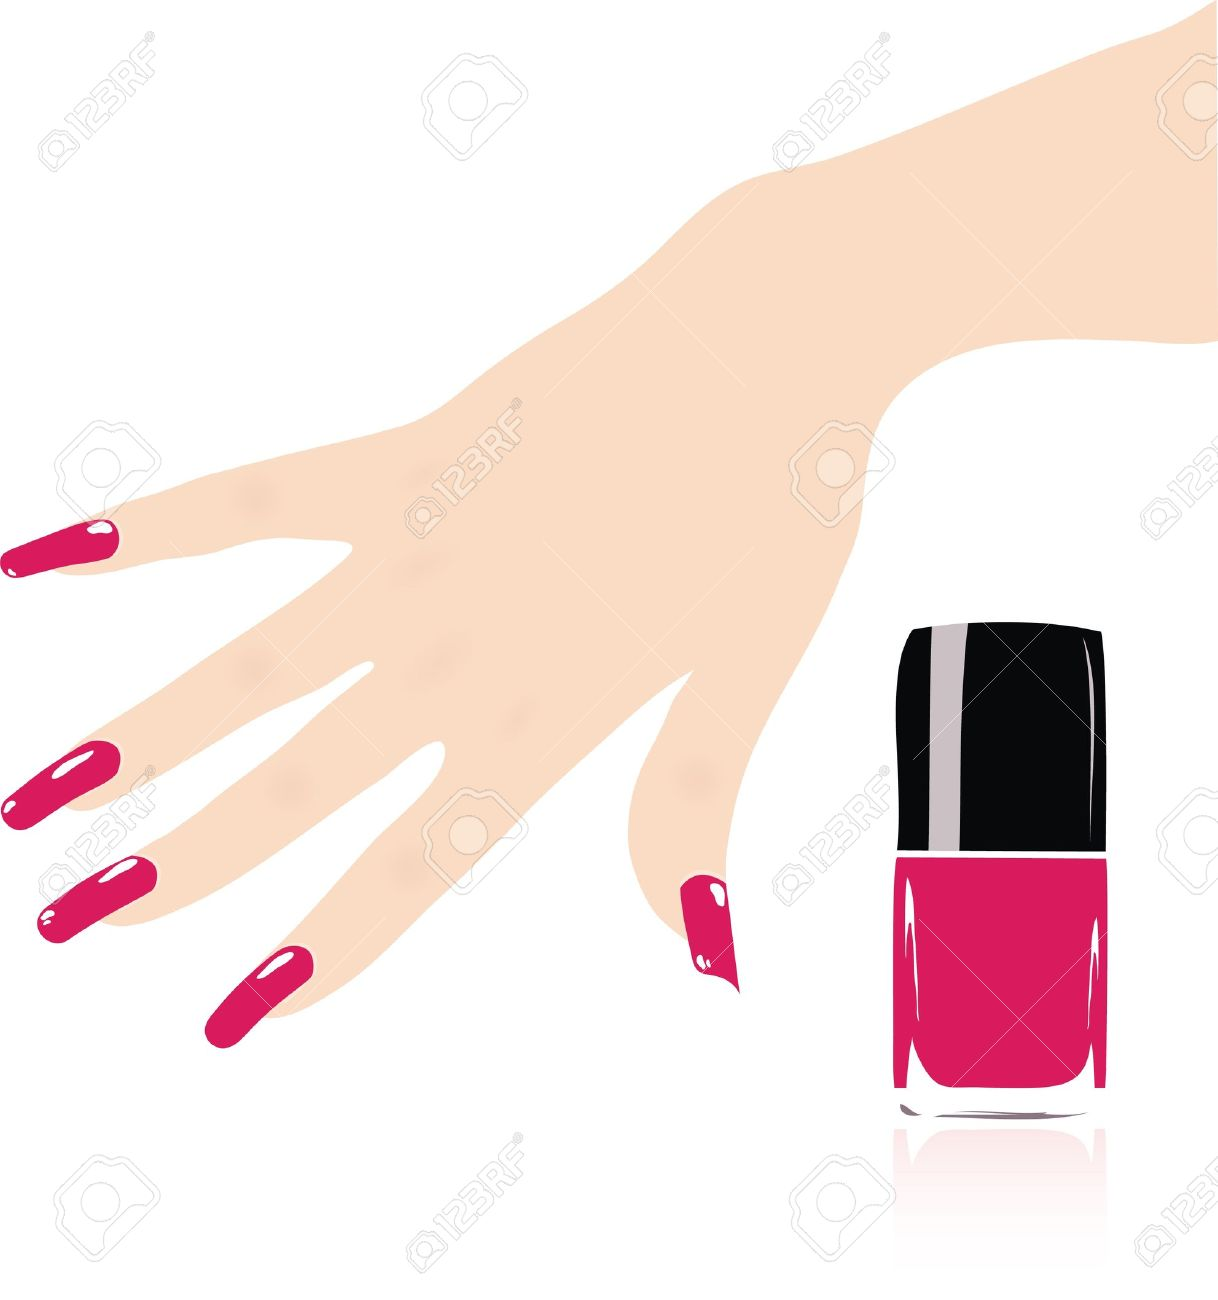 Nail Salon Woman Hand With